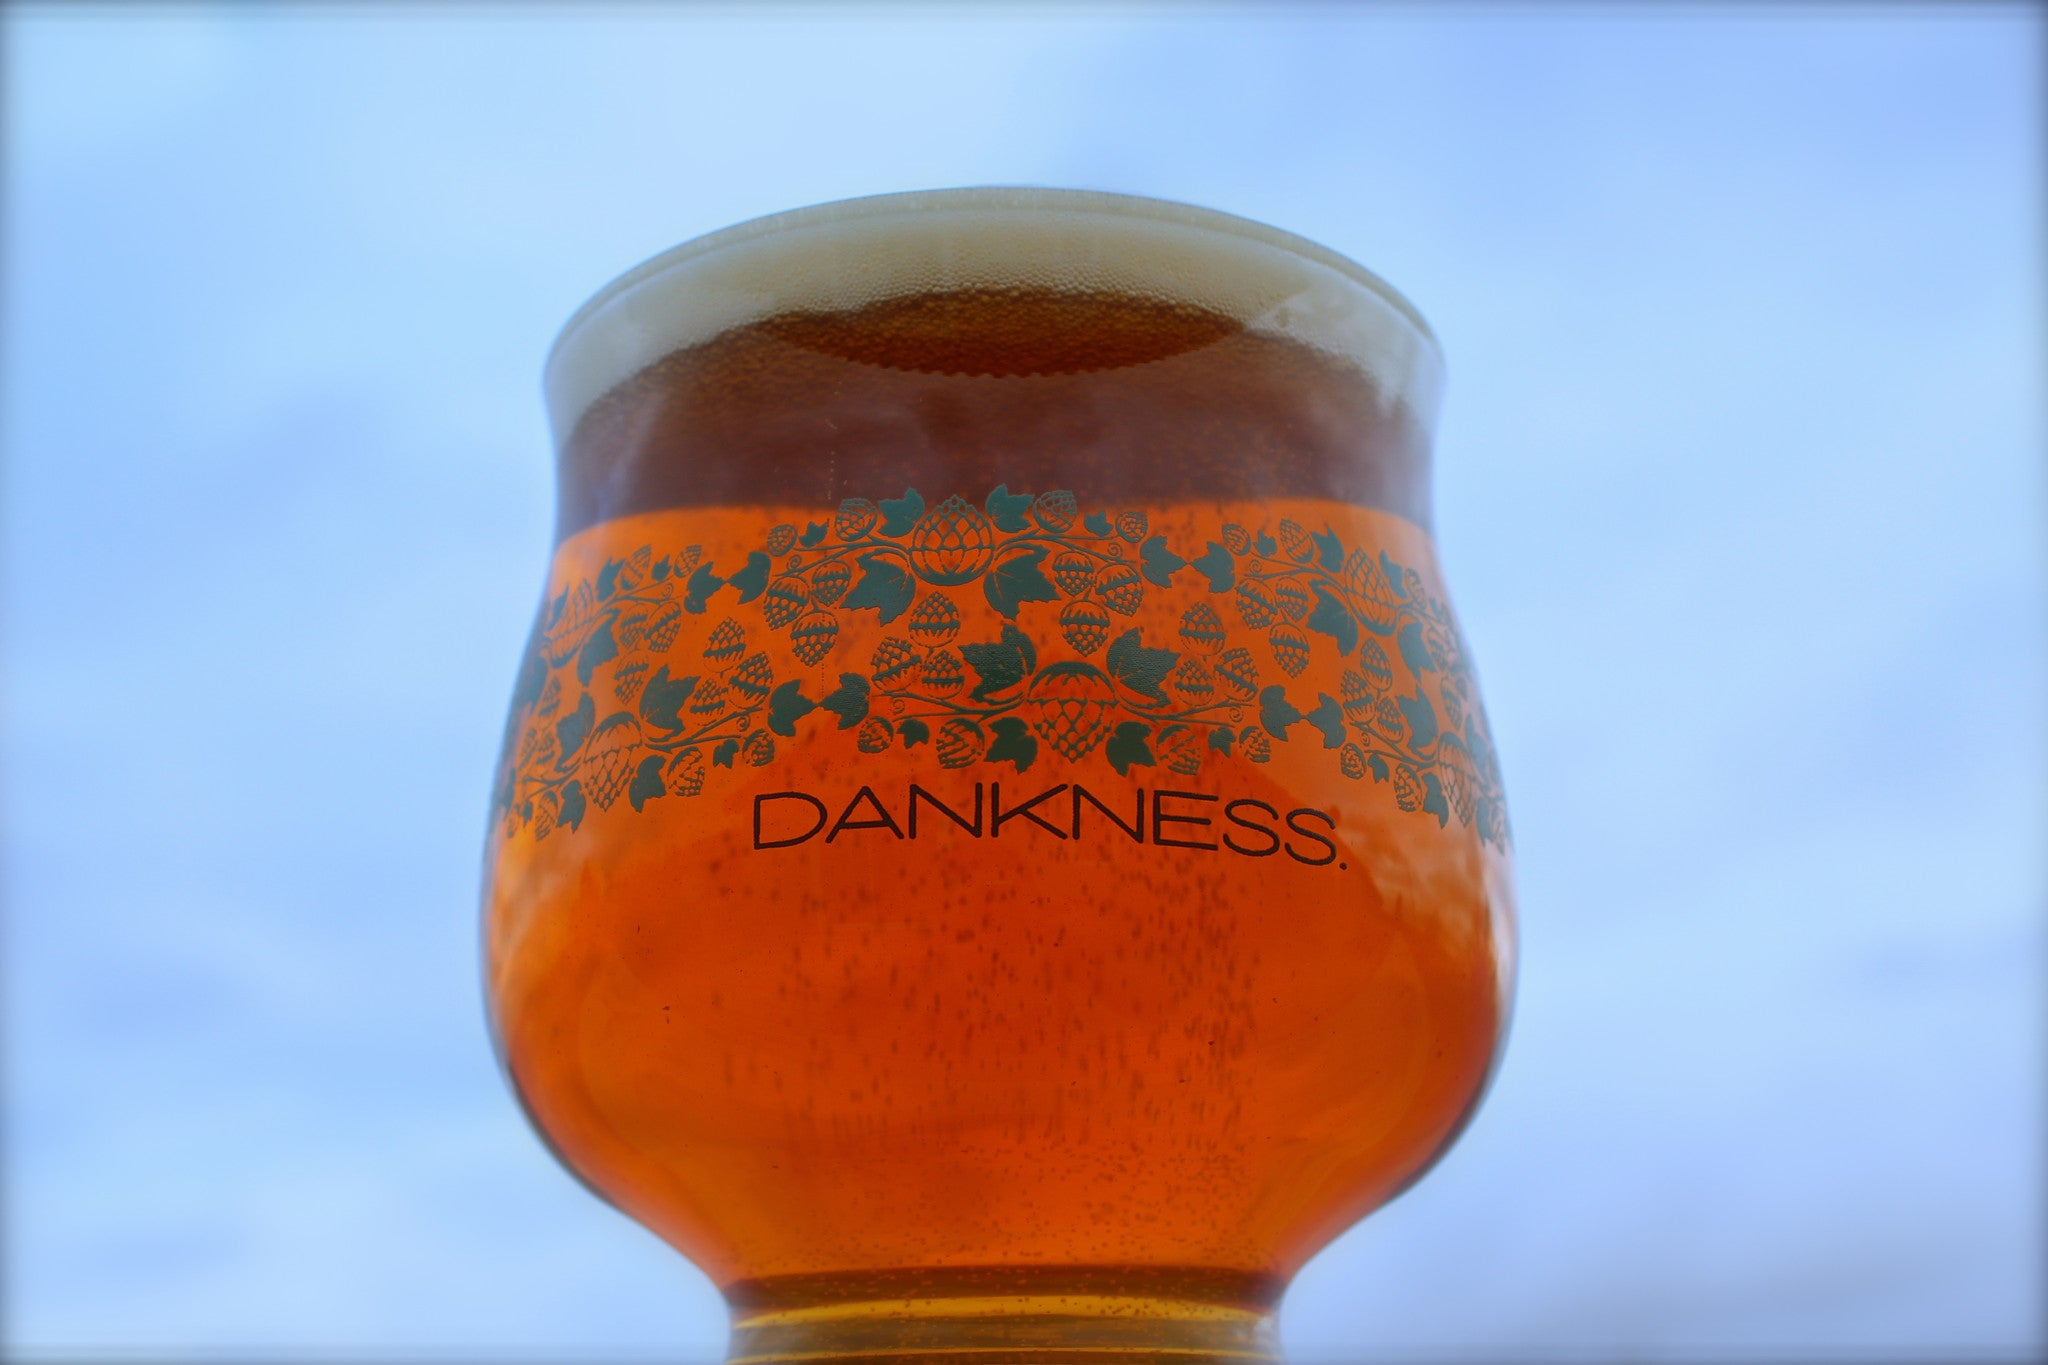 The Dankness Glass | Batch 2